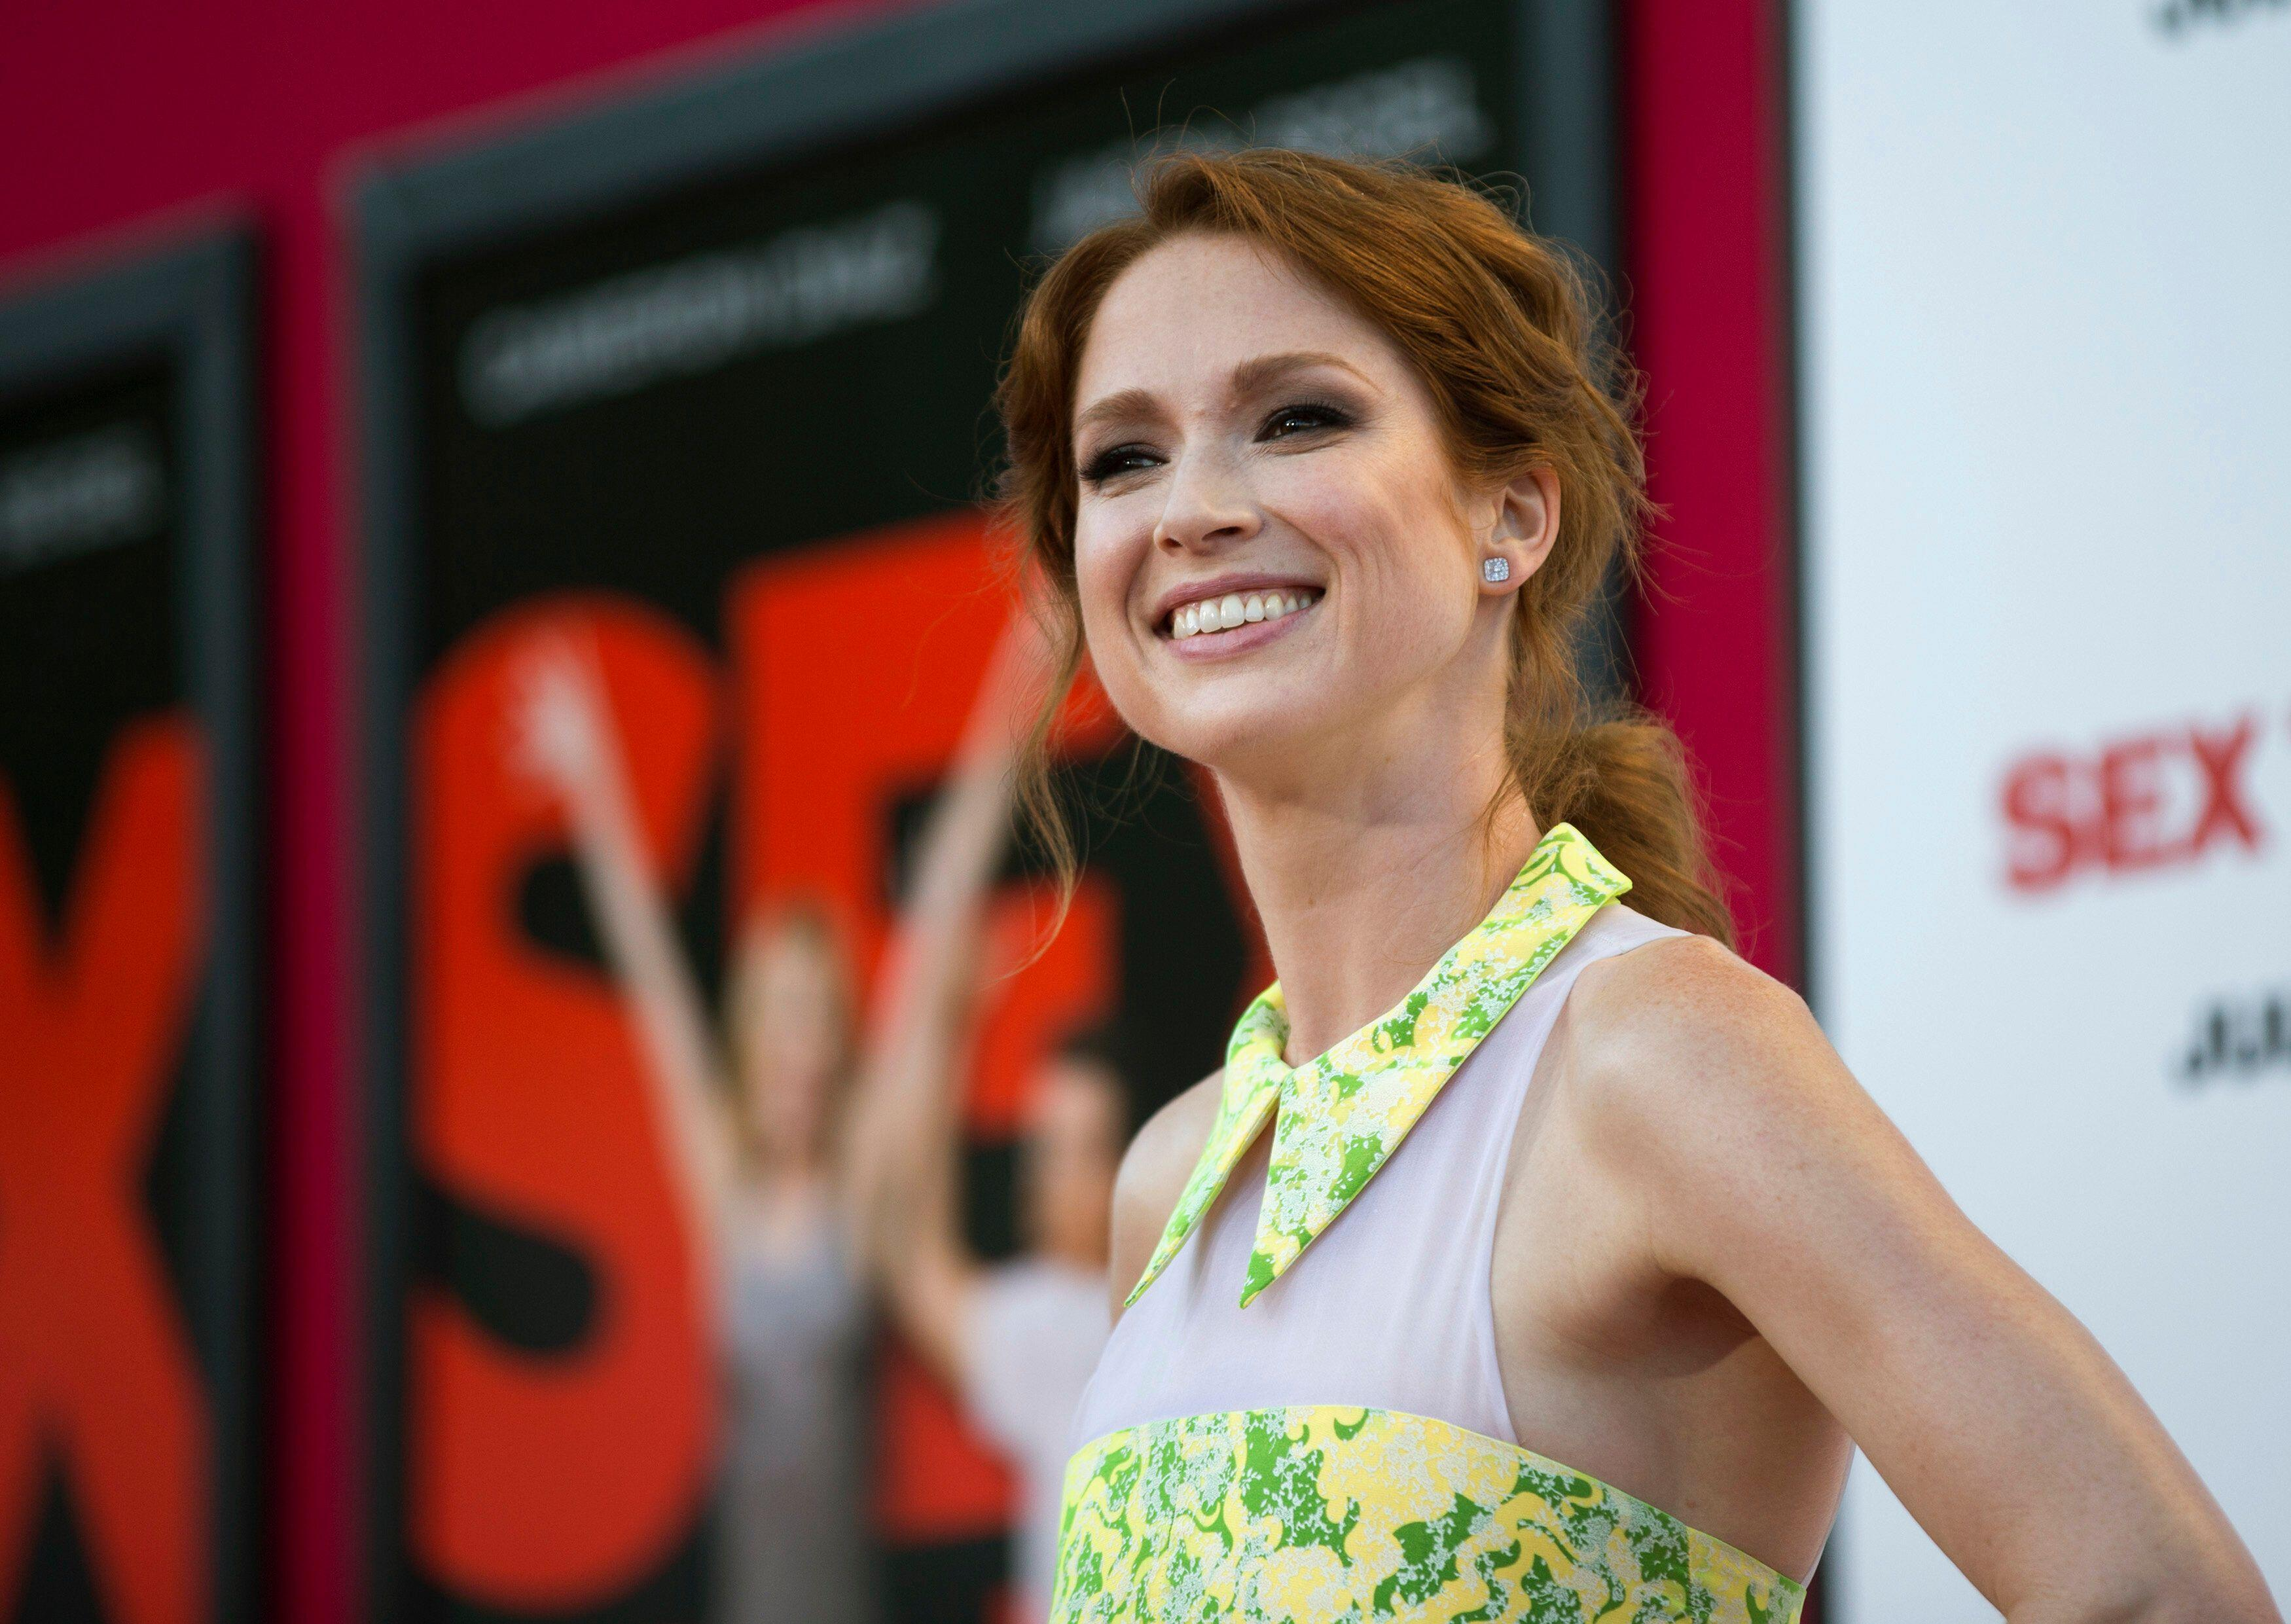 Netflix star Ellie Kemper pays for at least 5 streaming services — including Netflix